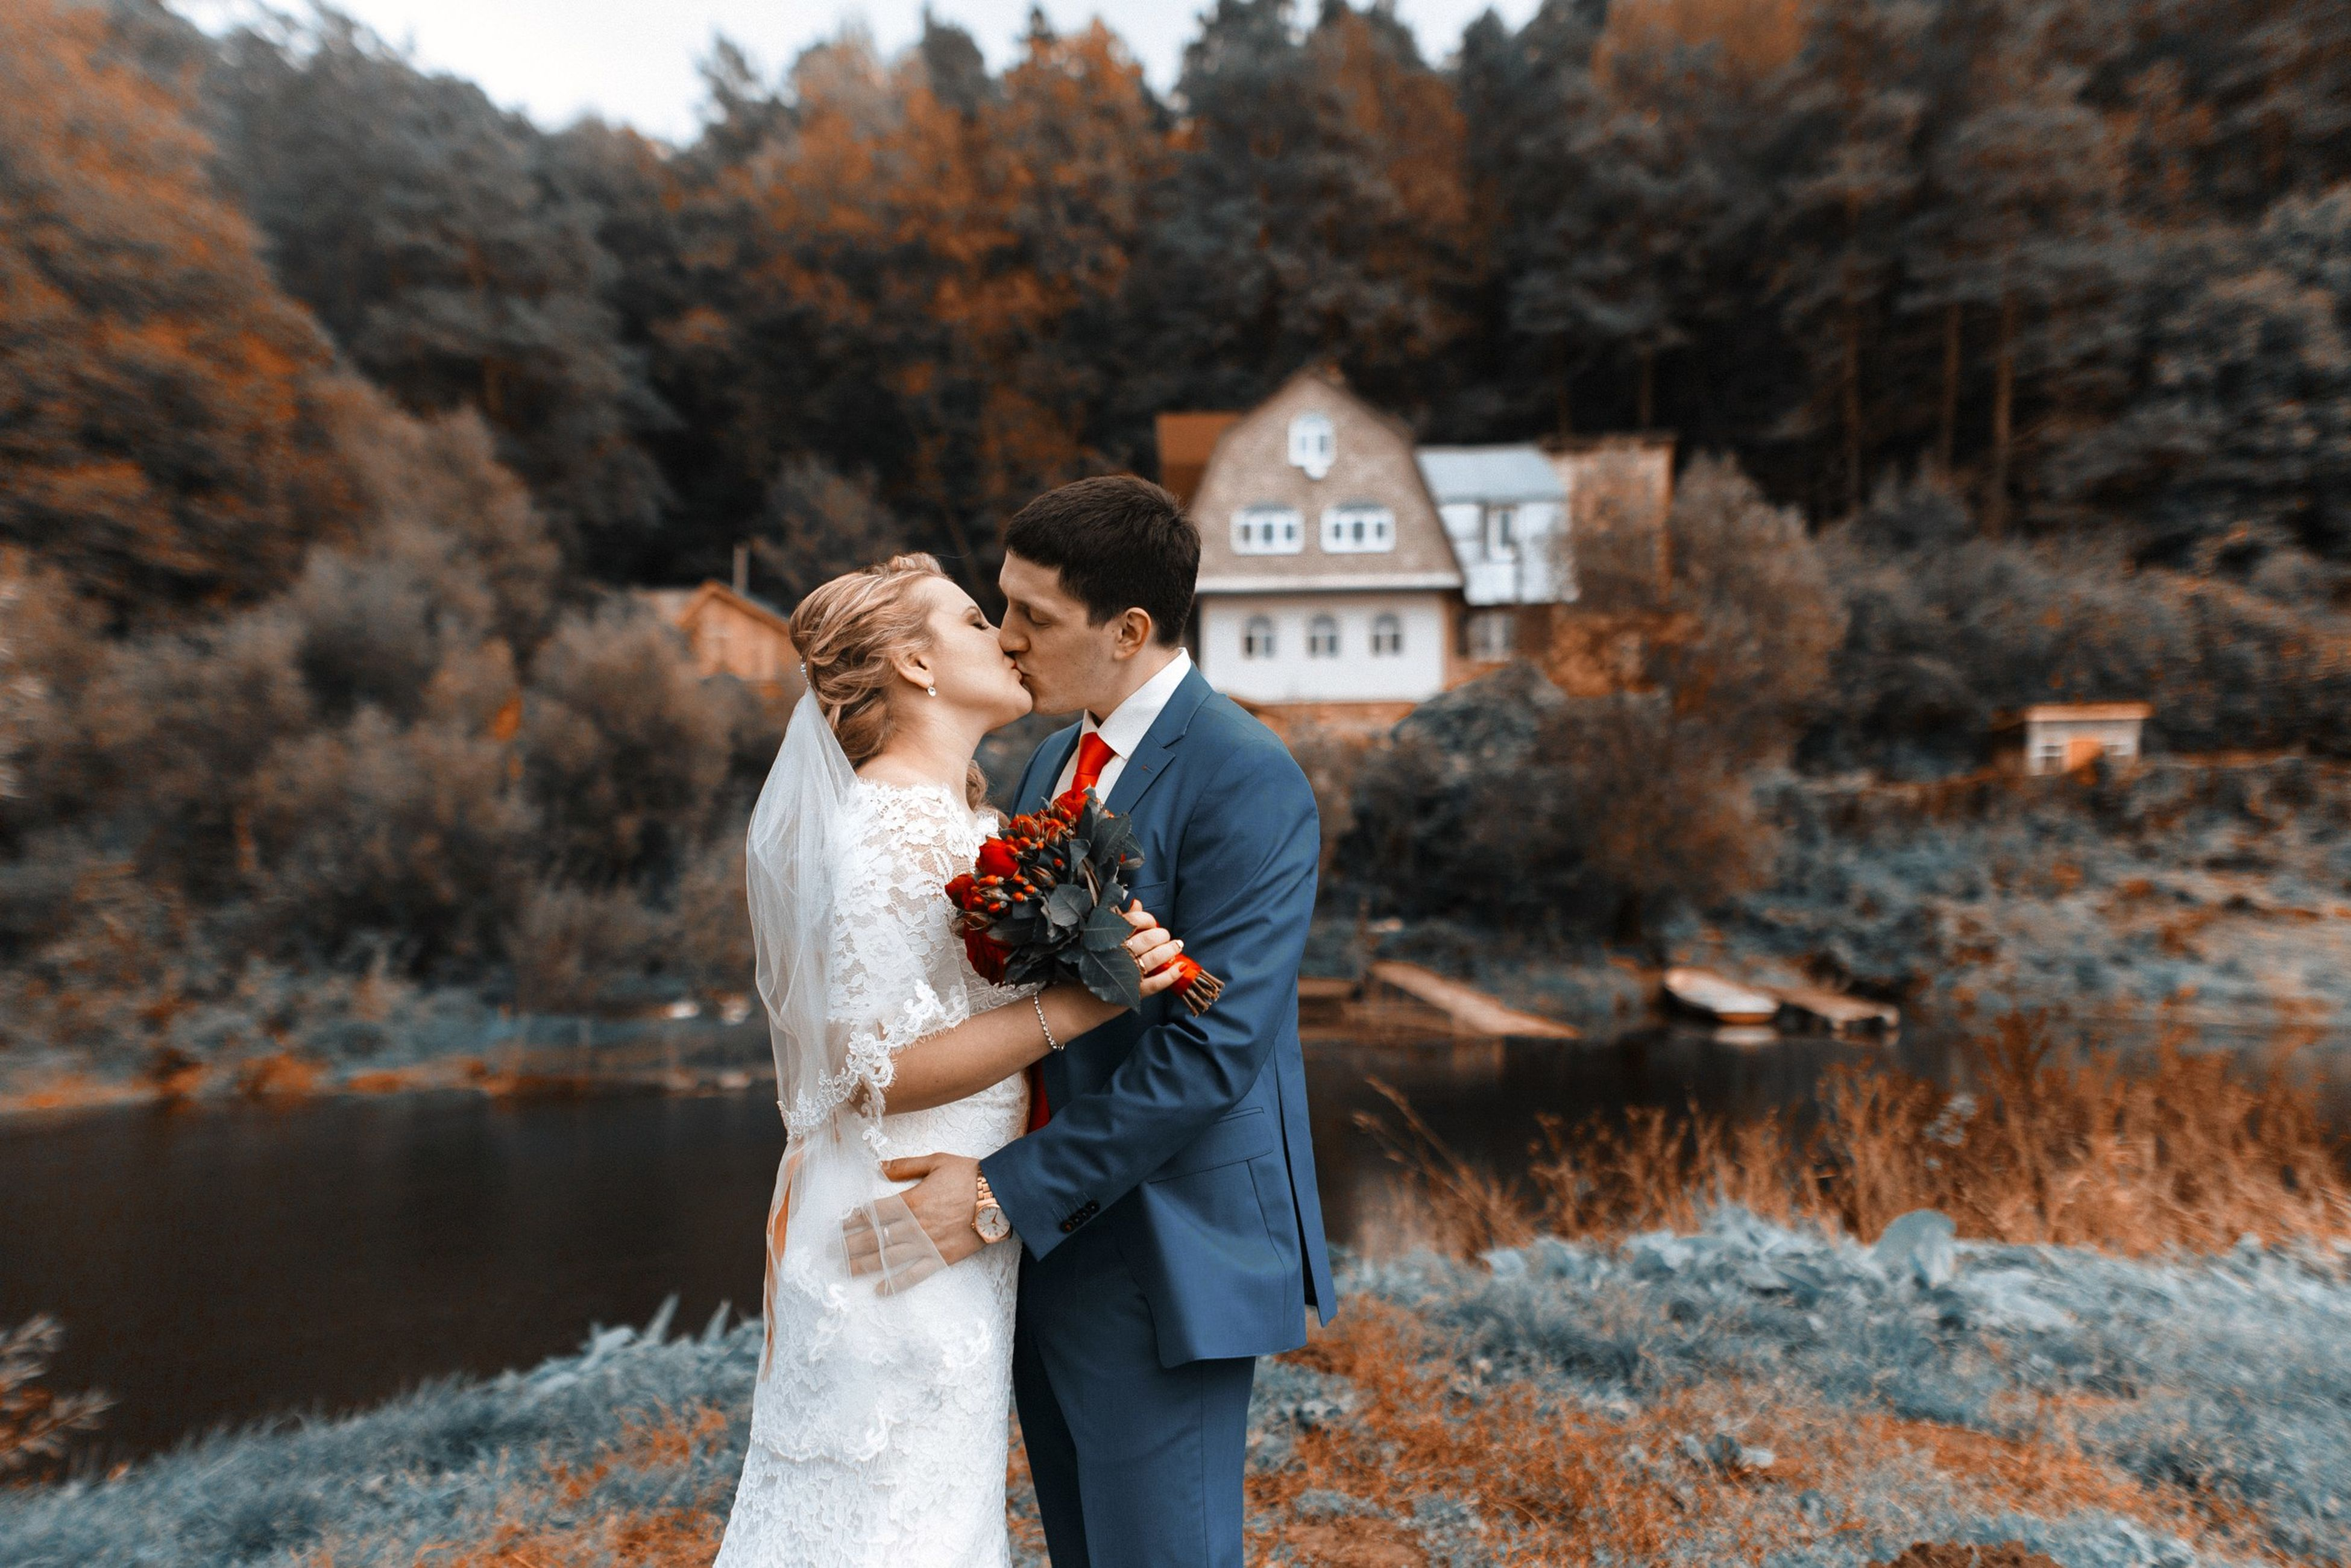 love, two people, young adult, togetherness, romance, young women, heterosexual couple, autumn, couple - relationship, happiness, flirting, women, wedding, men, bride, wedding dress, wife, adult, people, smiling, husband, bridegroom, bonding, adults only, civil partnership, outdoors, nature, day